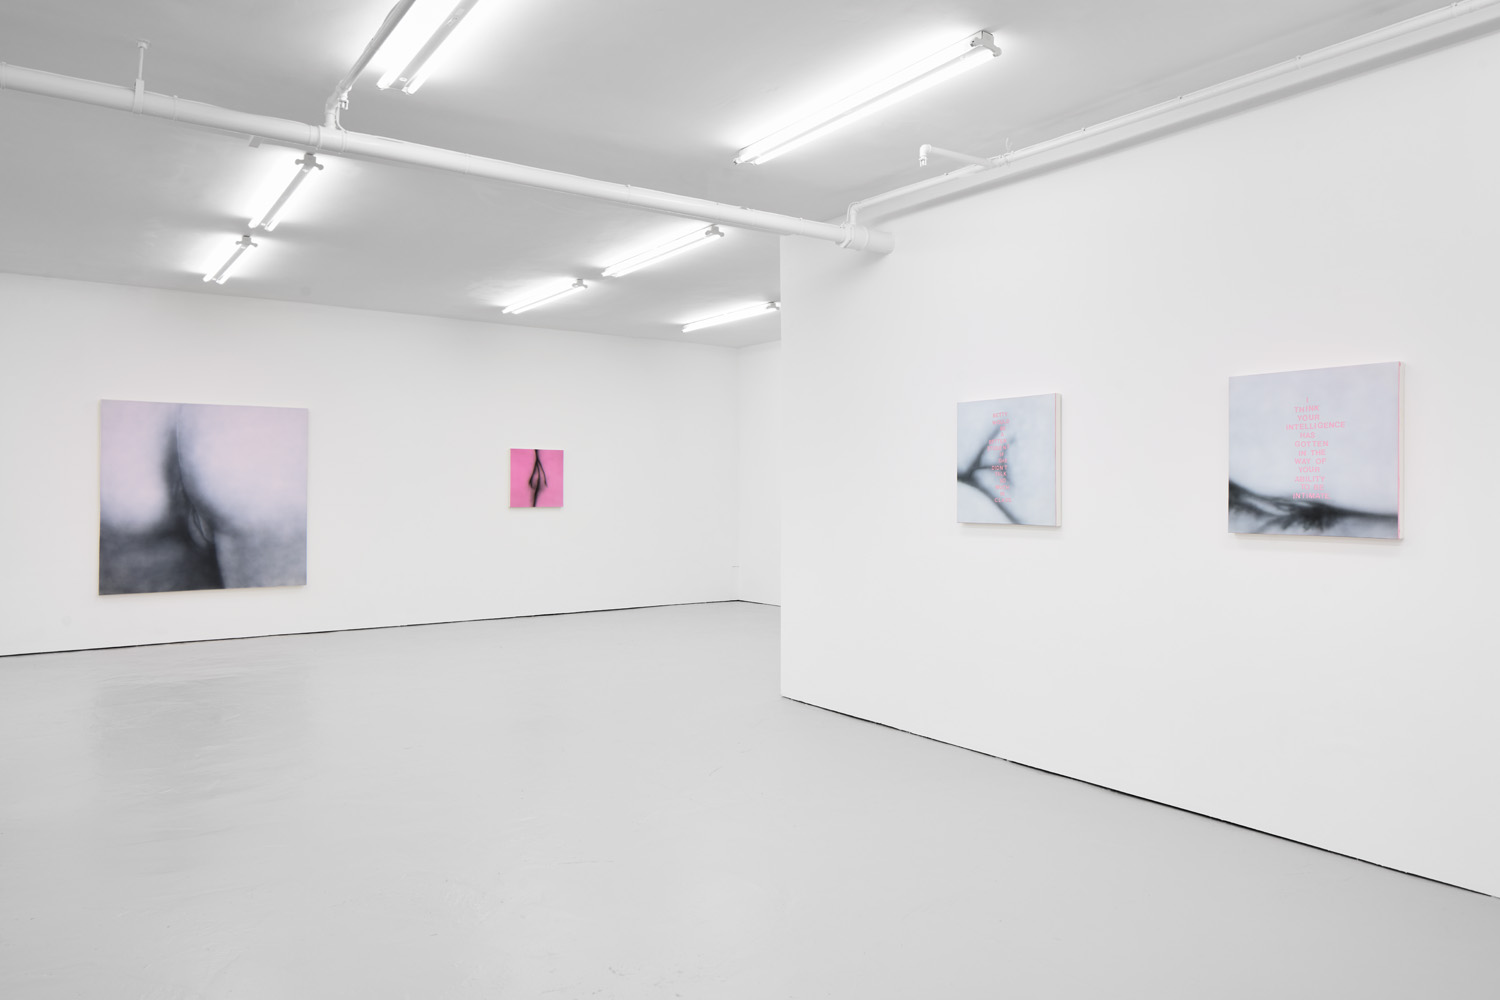 Install view 03 Betty Tompkins Fuck Paintings, Etc at J HAMMOND PROJECTS 2019.jpg